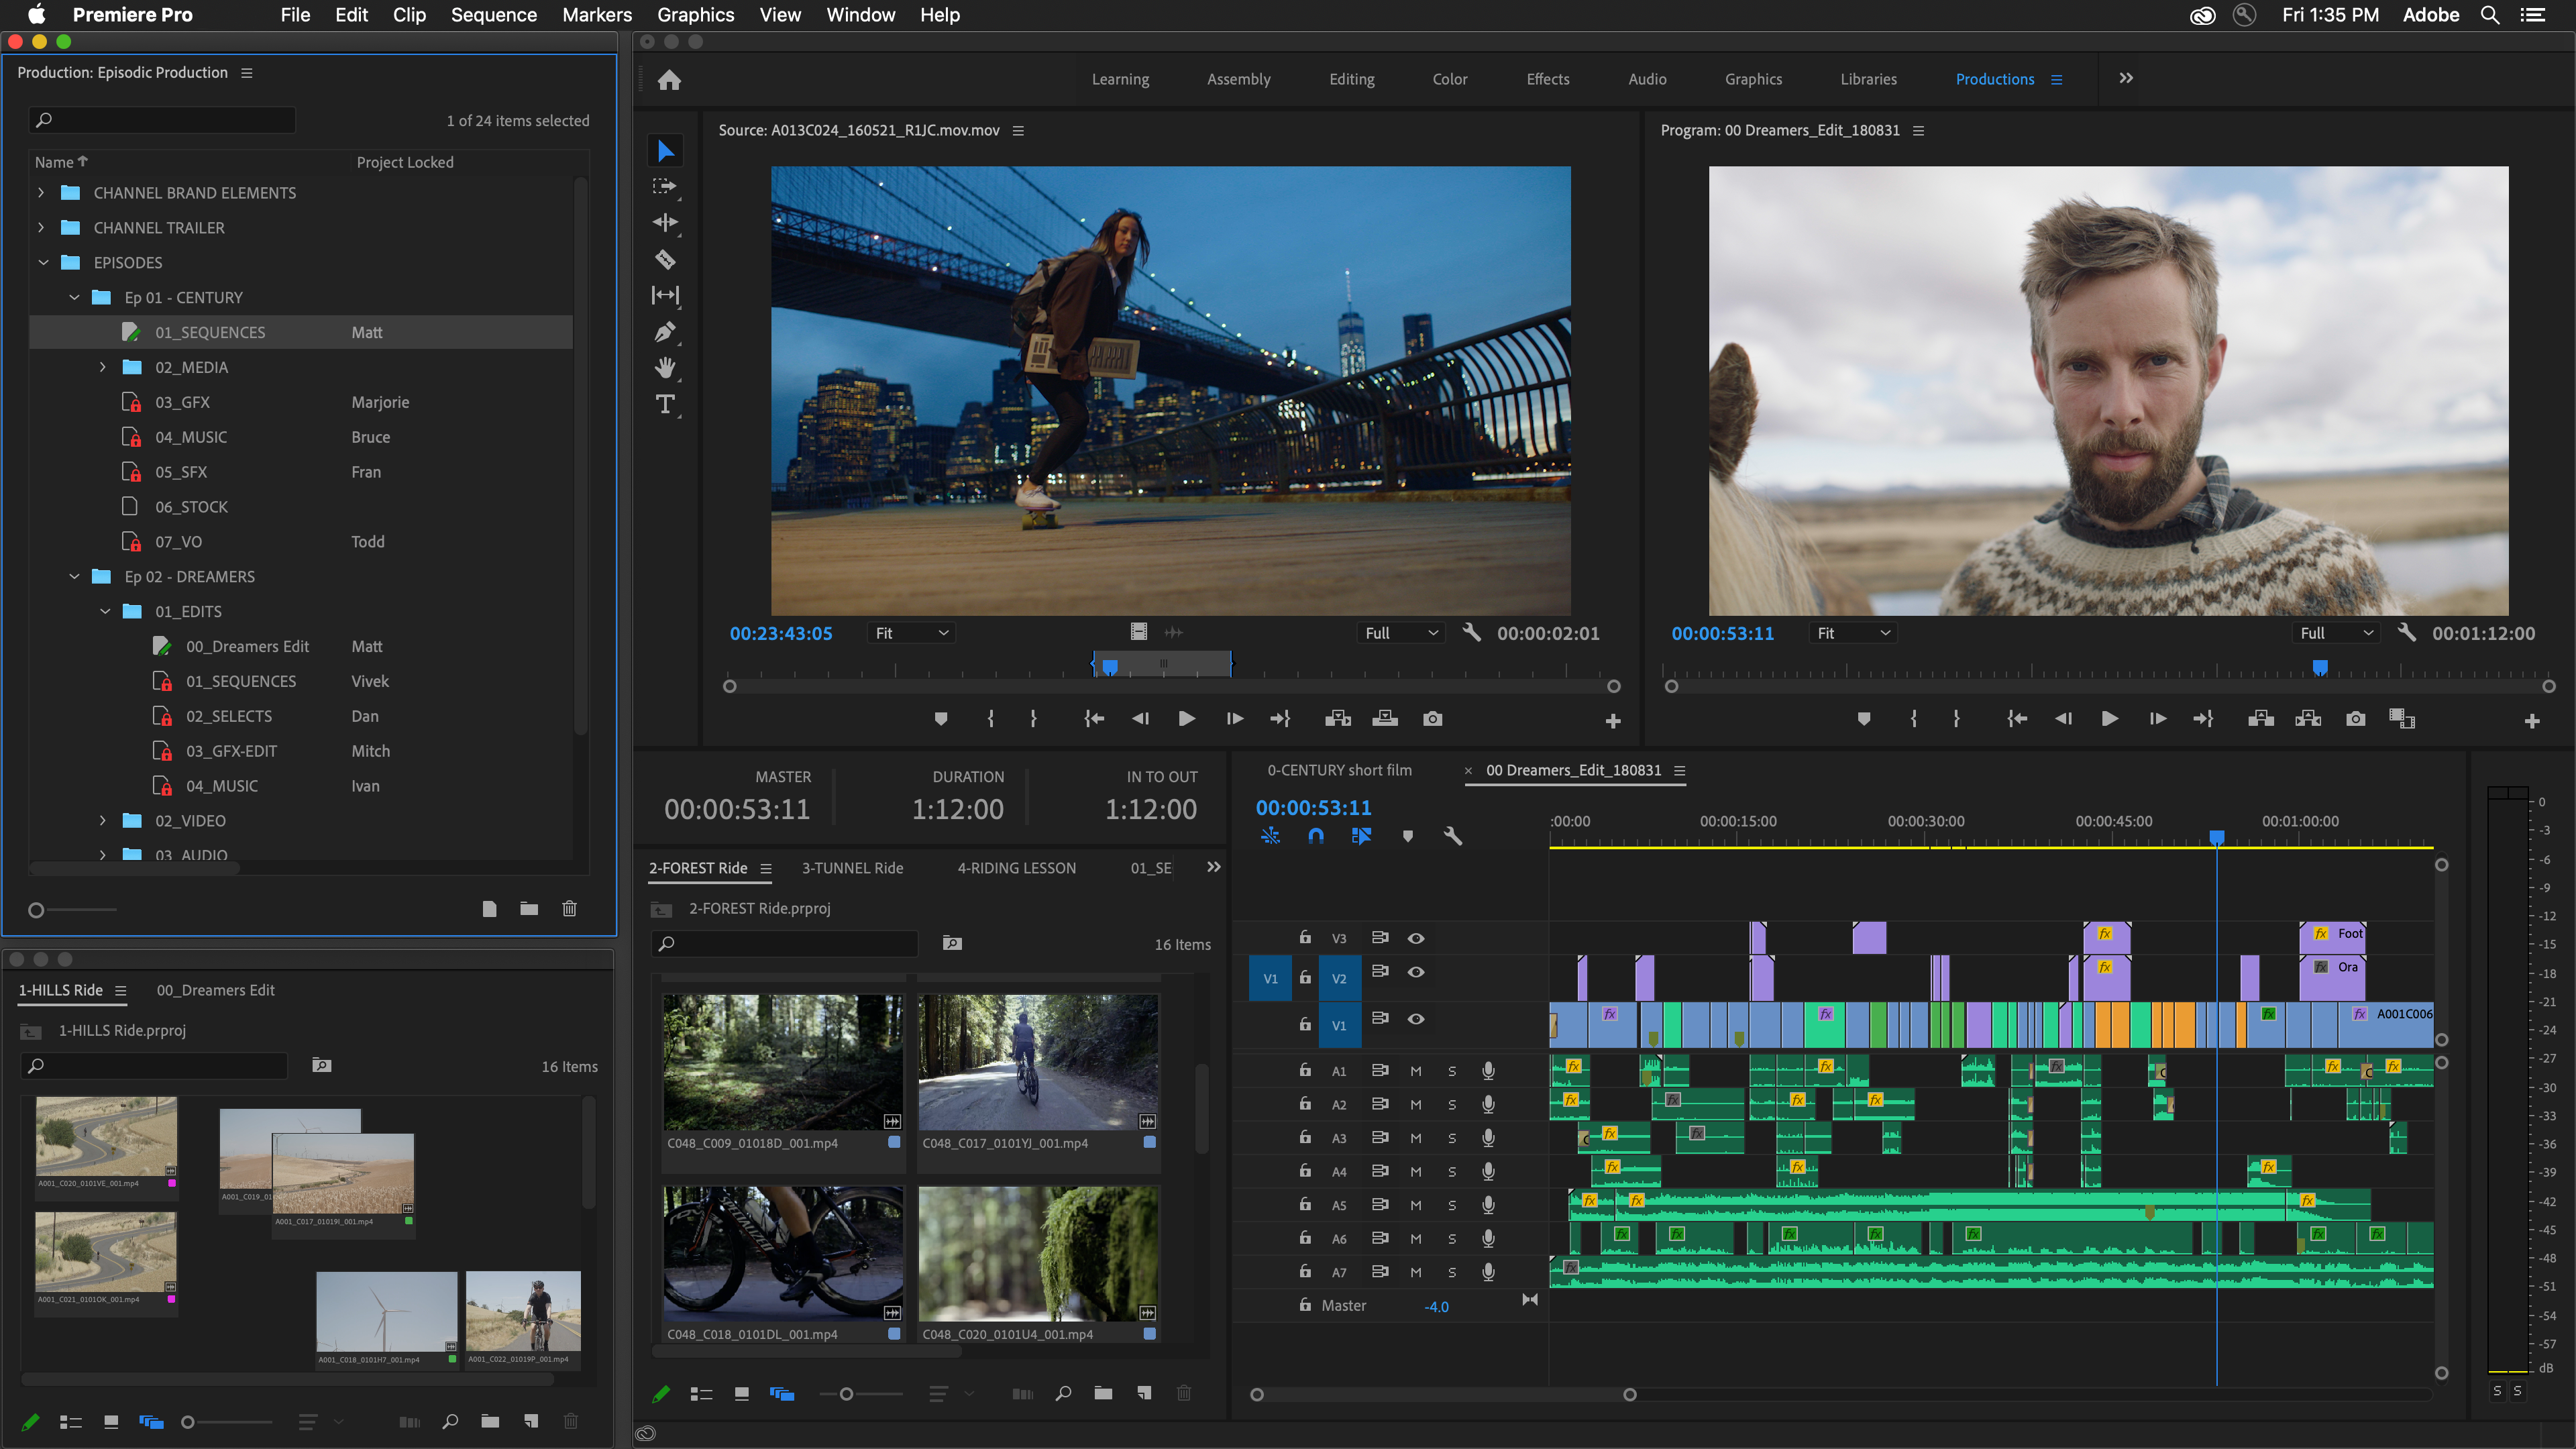 Adobe Premiere Pro Productions Adds Management Collaboration Tools Variety